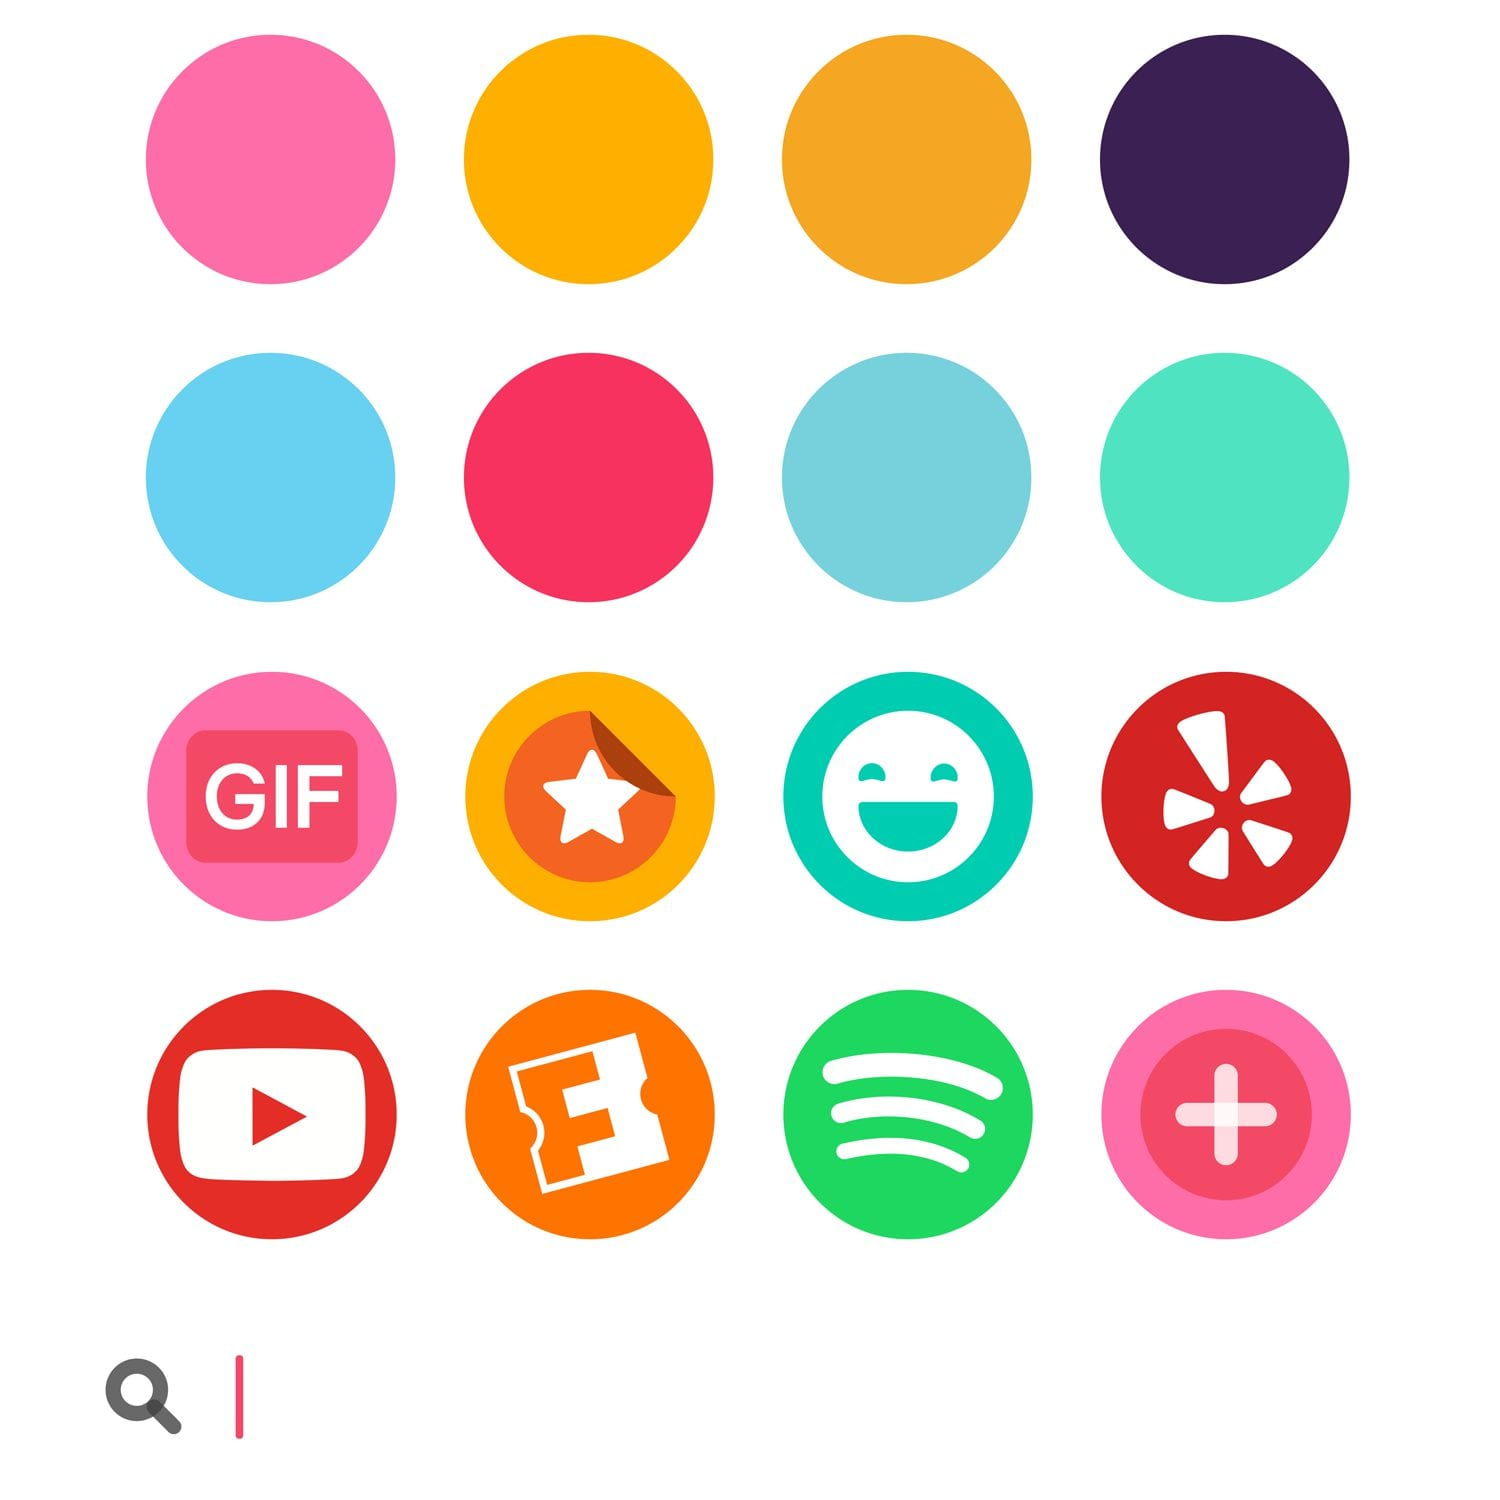 fleksy-keyboard-has-fastest-access-to-content-from-keyboard-thanks-to-fleksyapps